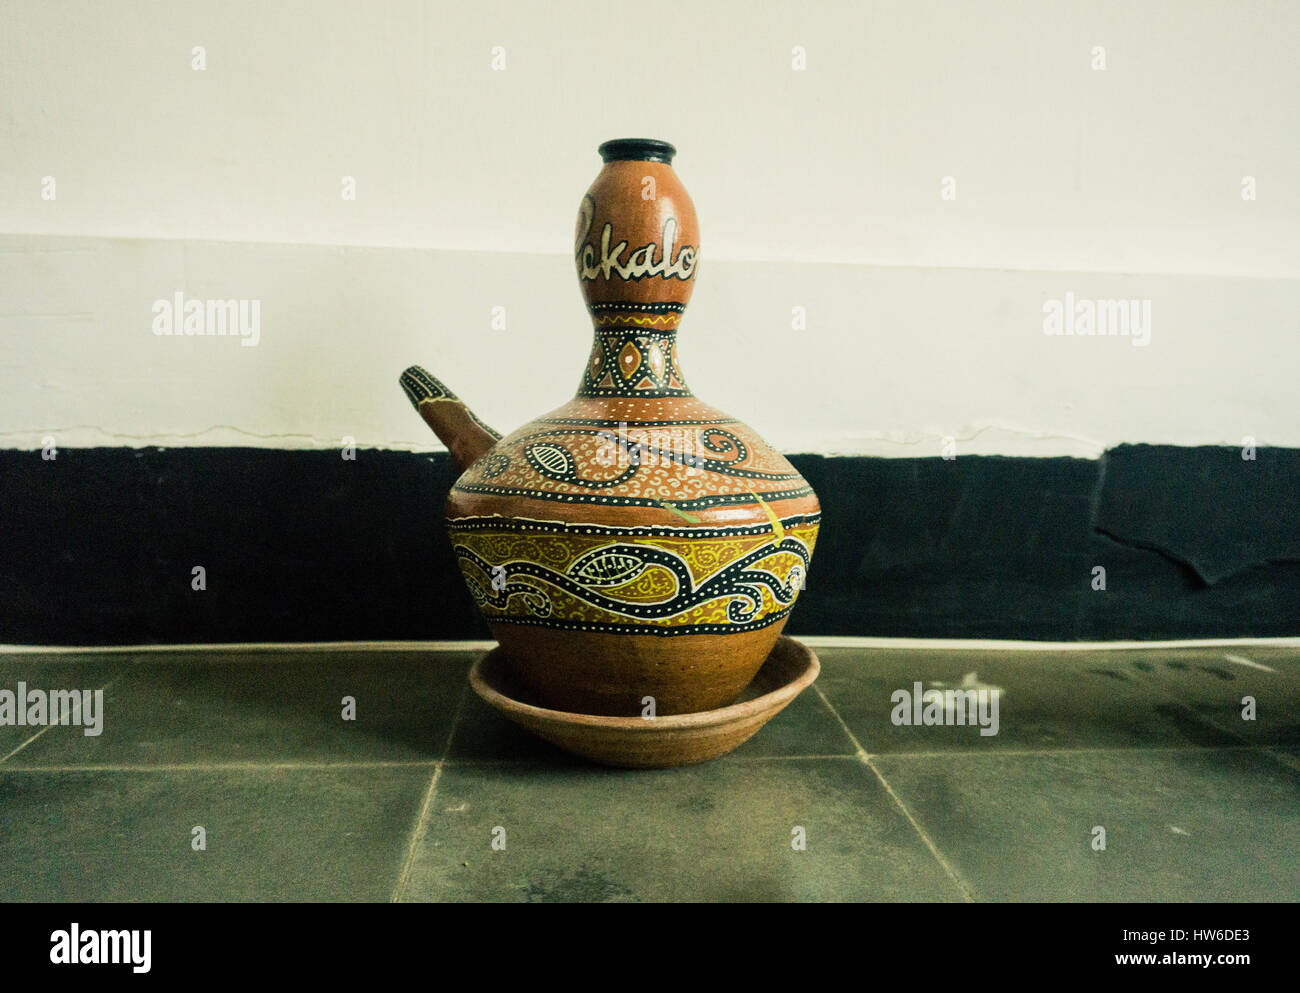 Kendi As One Of Traditional Pottery Made From Clay With Unique Motif